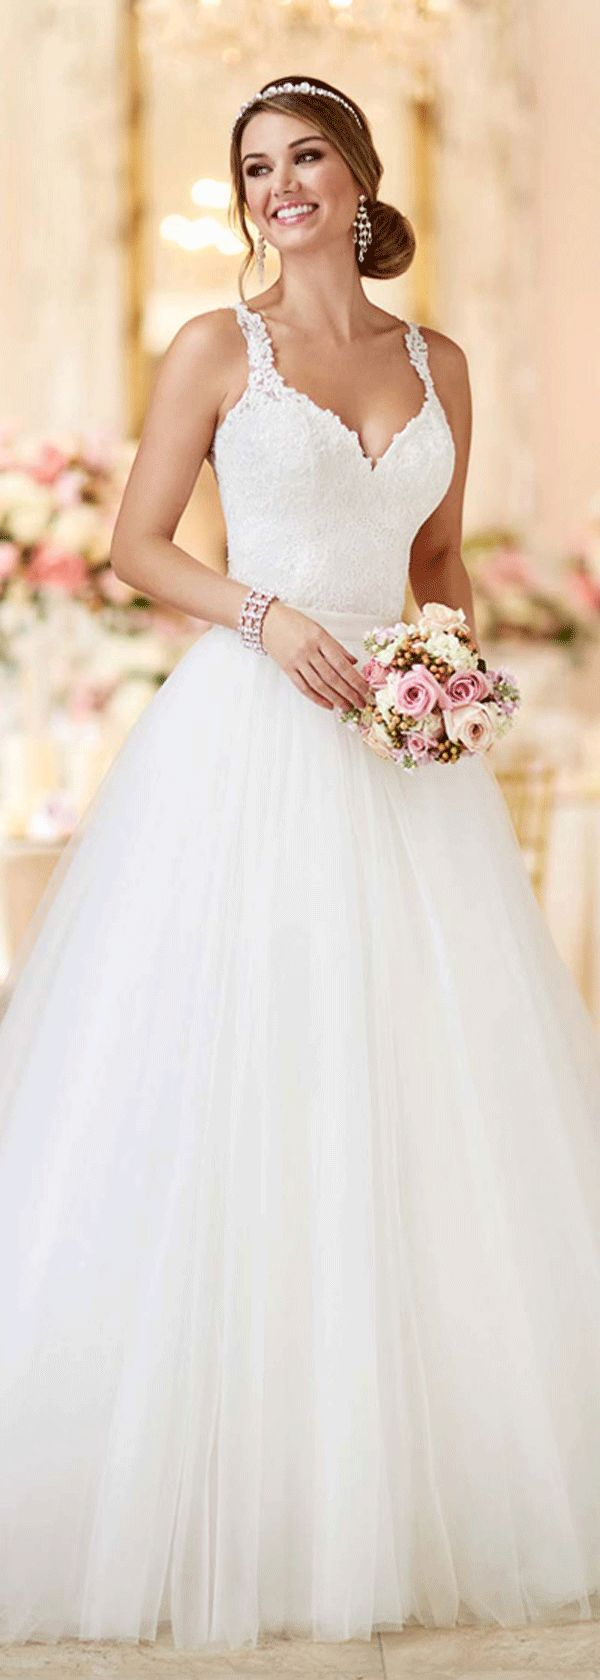 Best 20 dresses with lace ideas on pinterest wedding for Stella york convertible wedding dress